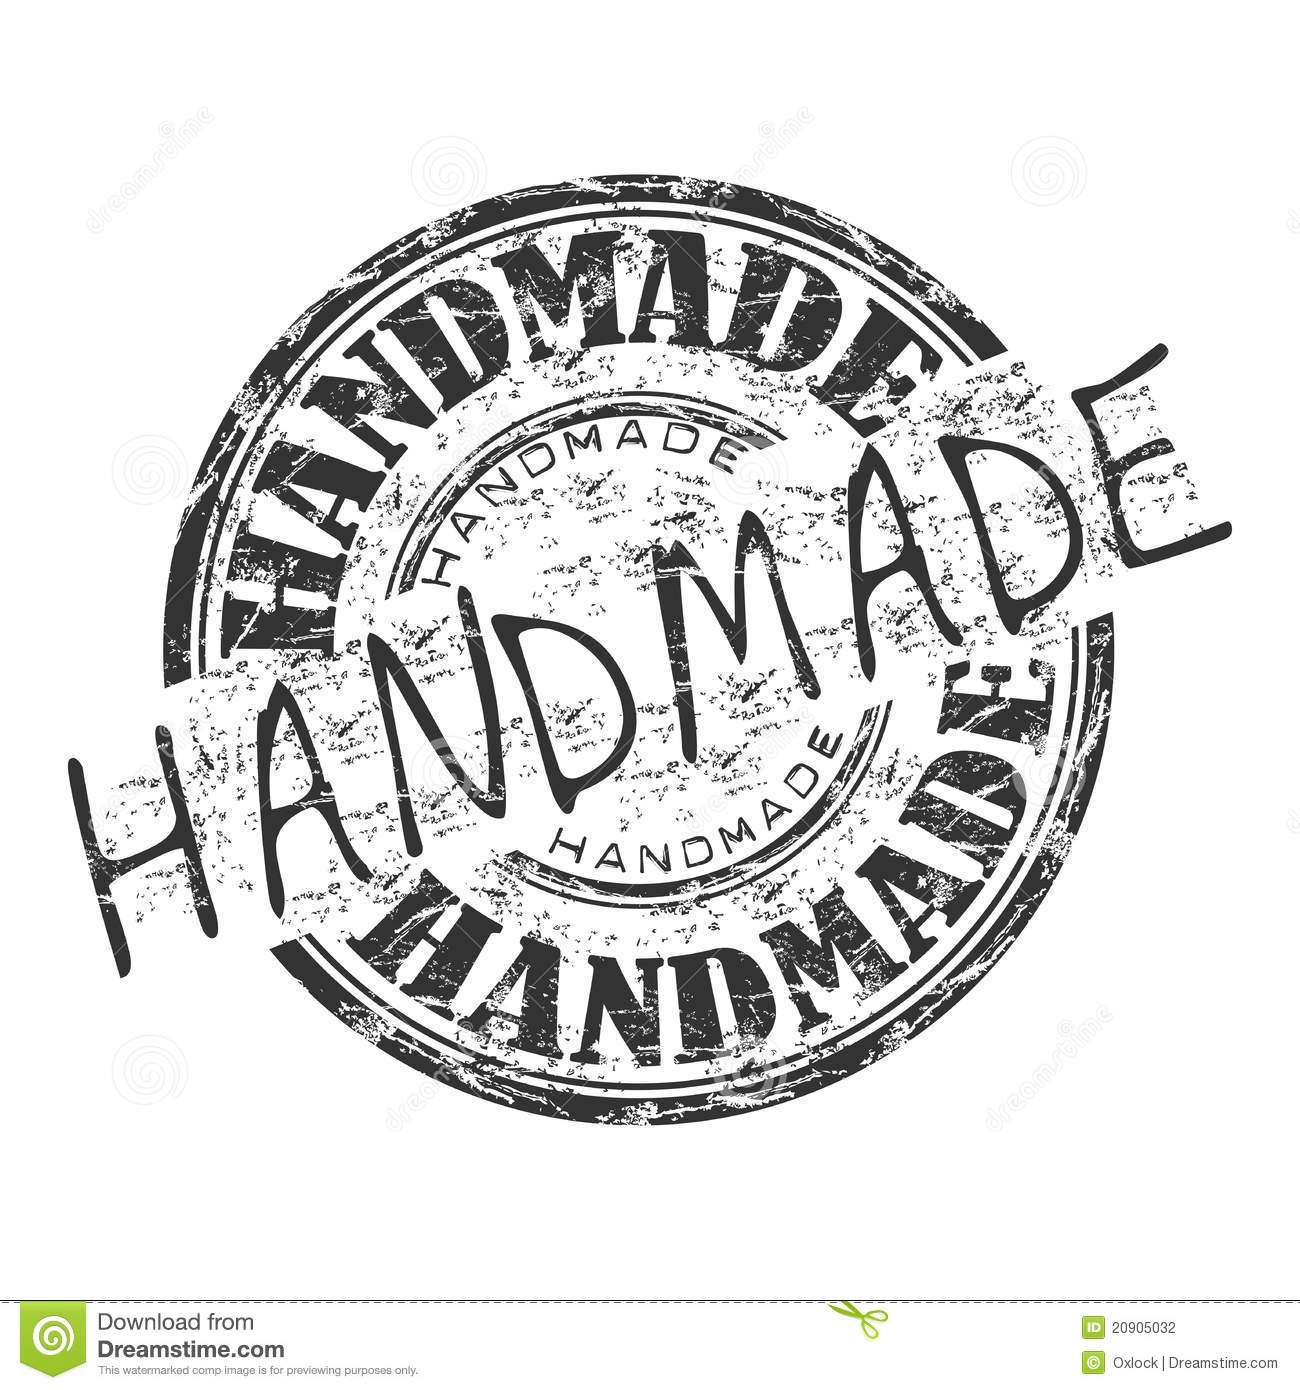 Handmade Clipart - Clipart Suggest